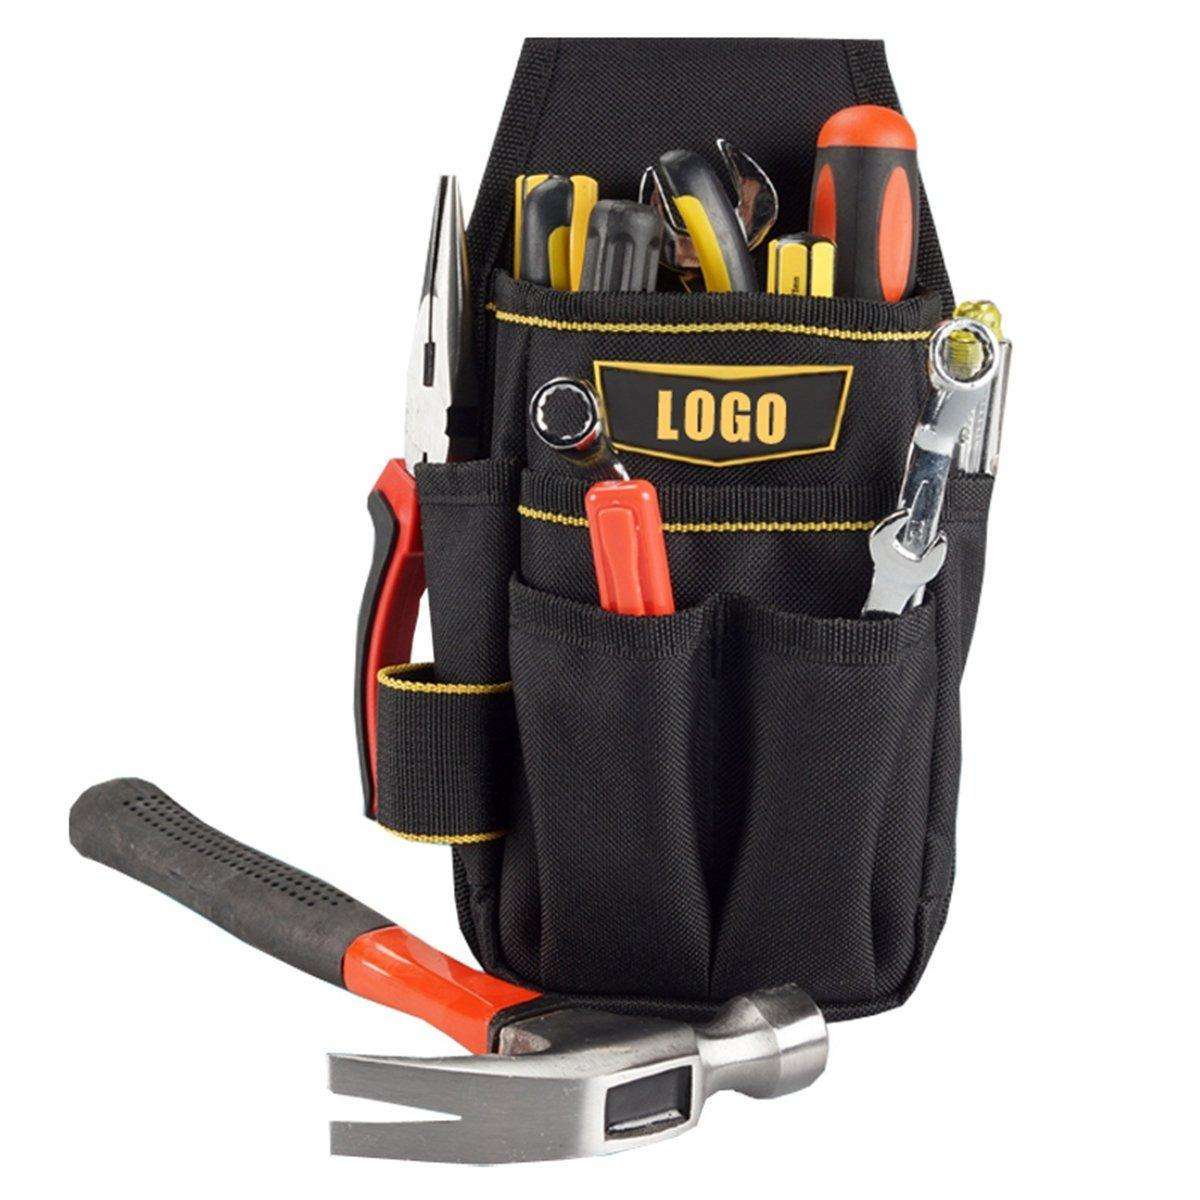 Jual Esogoal Hardware Tool Kit Bag Waist Pocket Tool Bag For Tool Collection Esogoal Asli